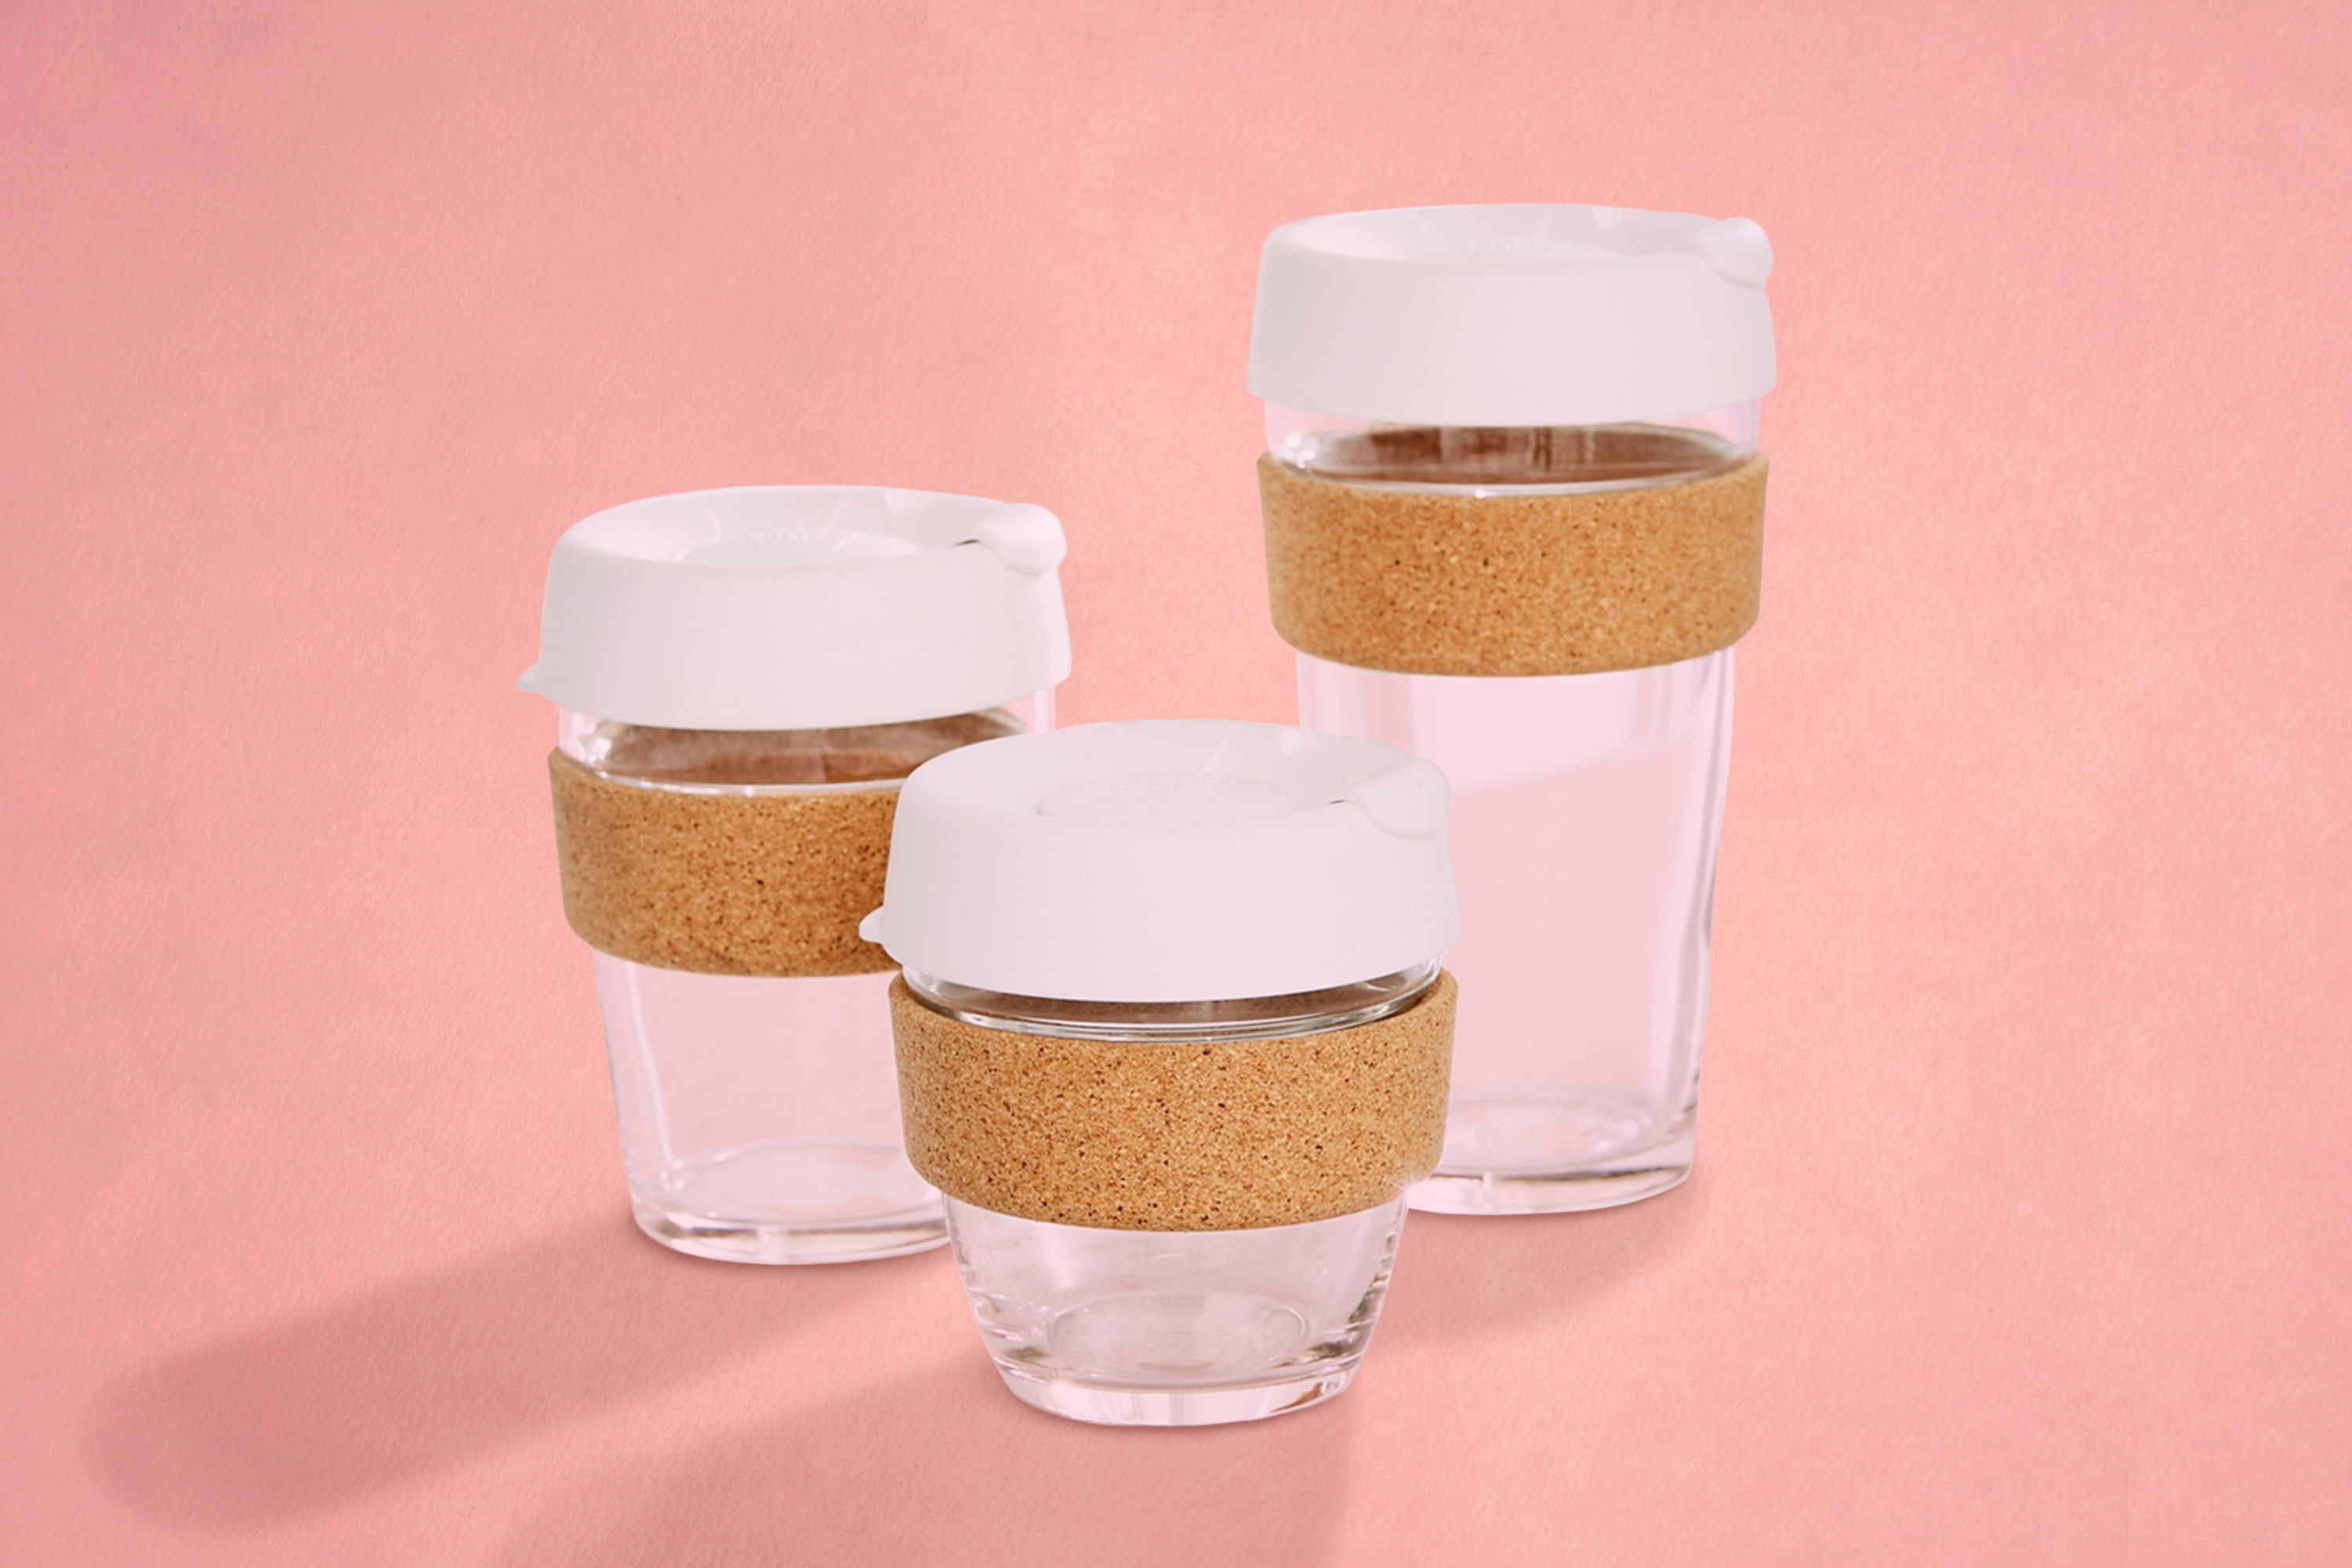 Cork mugs are trendy and cool